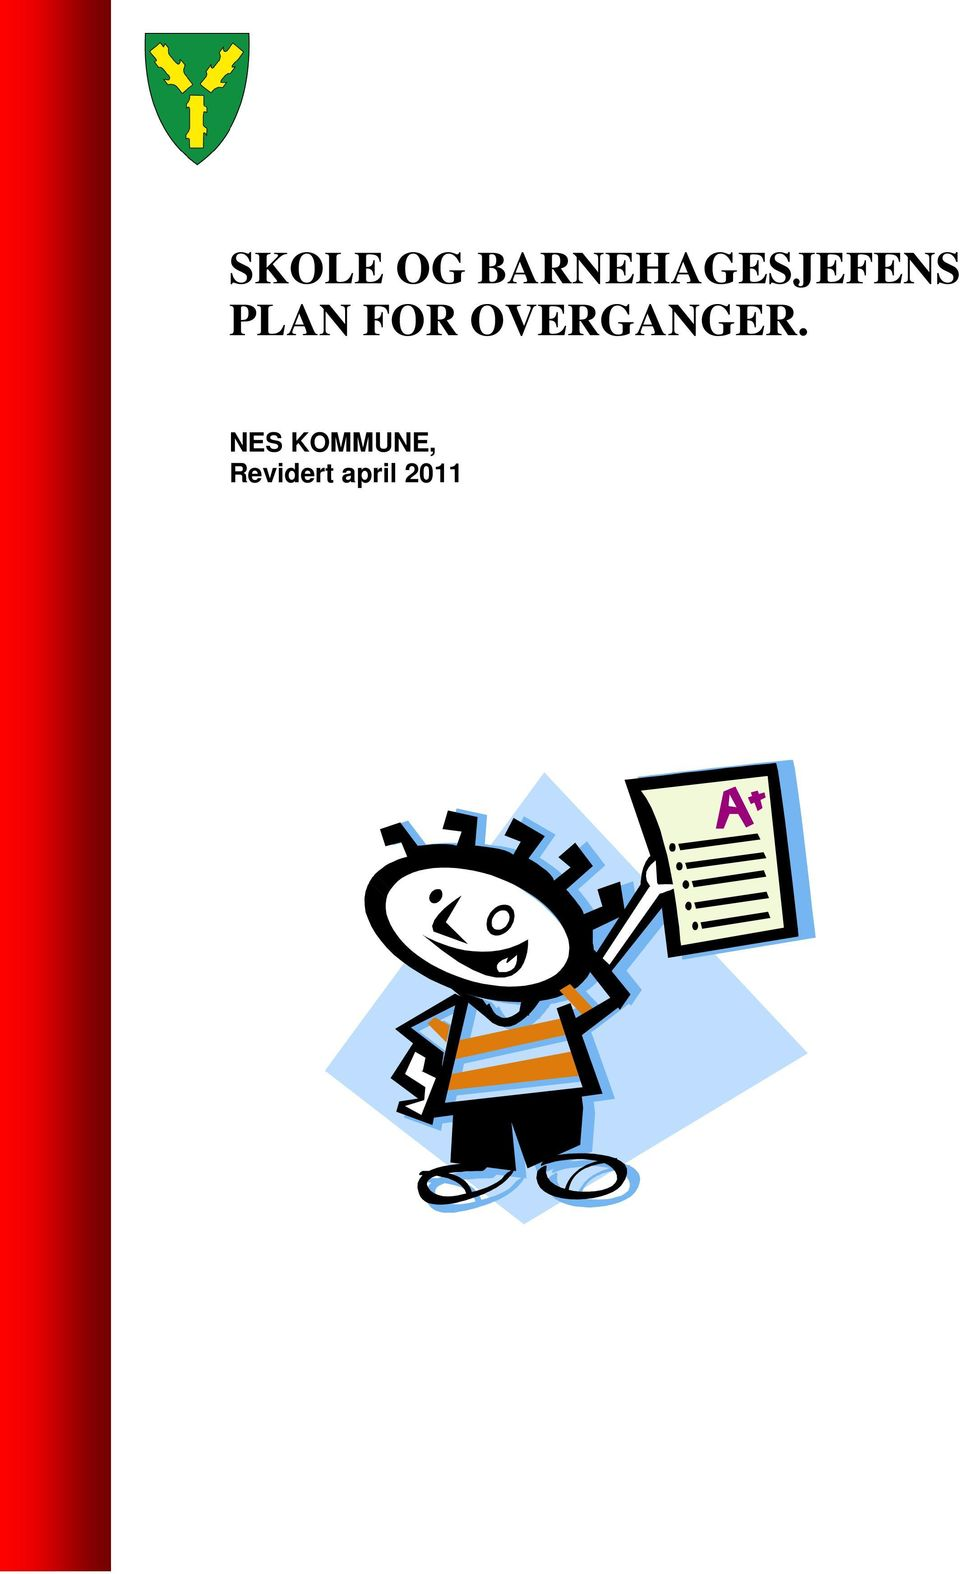 PLAN FOR OVERGANGER.